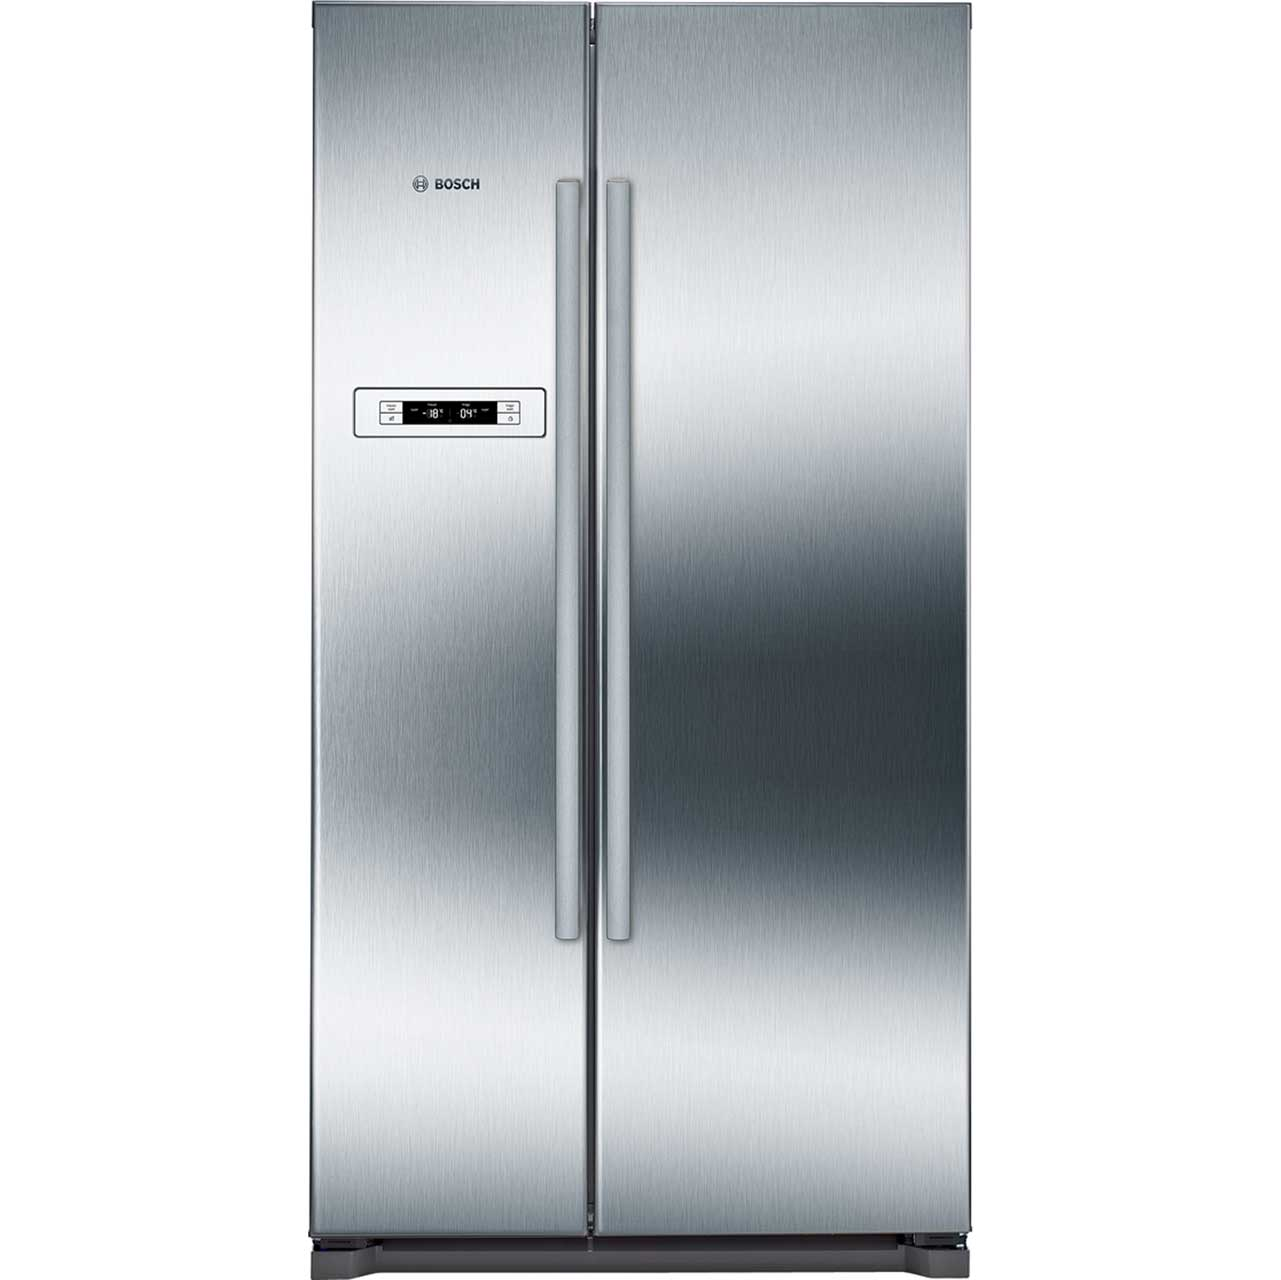 Bosch Serie 4 KAN90VI20G American Fridge Freezer - Stainless Steel